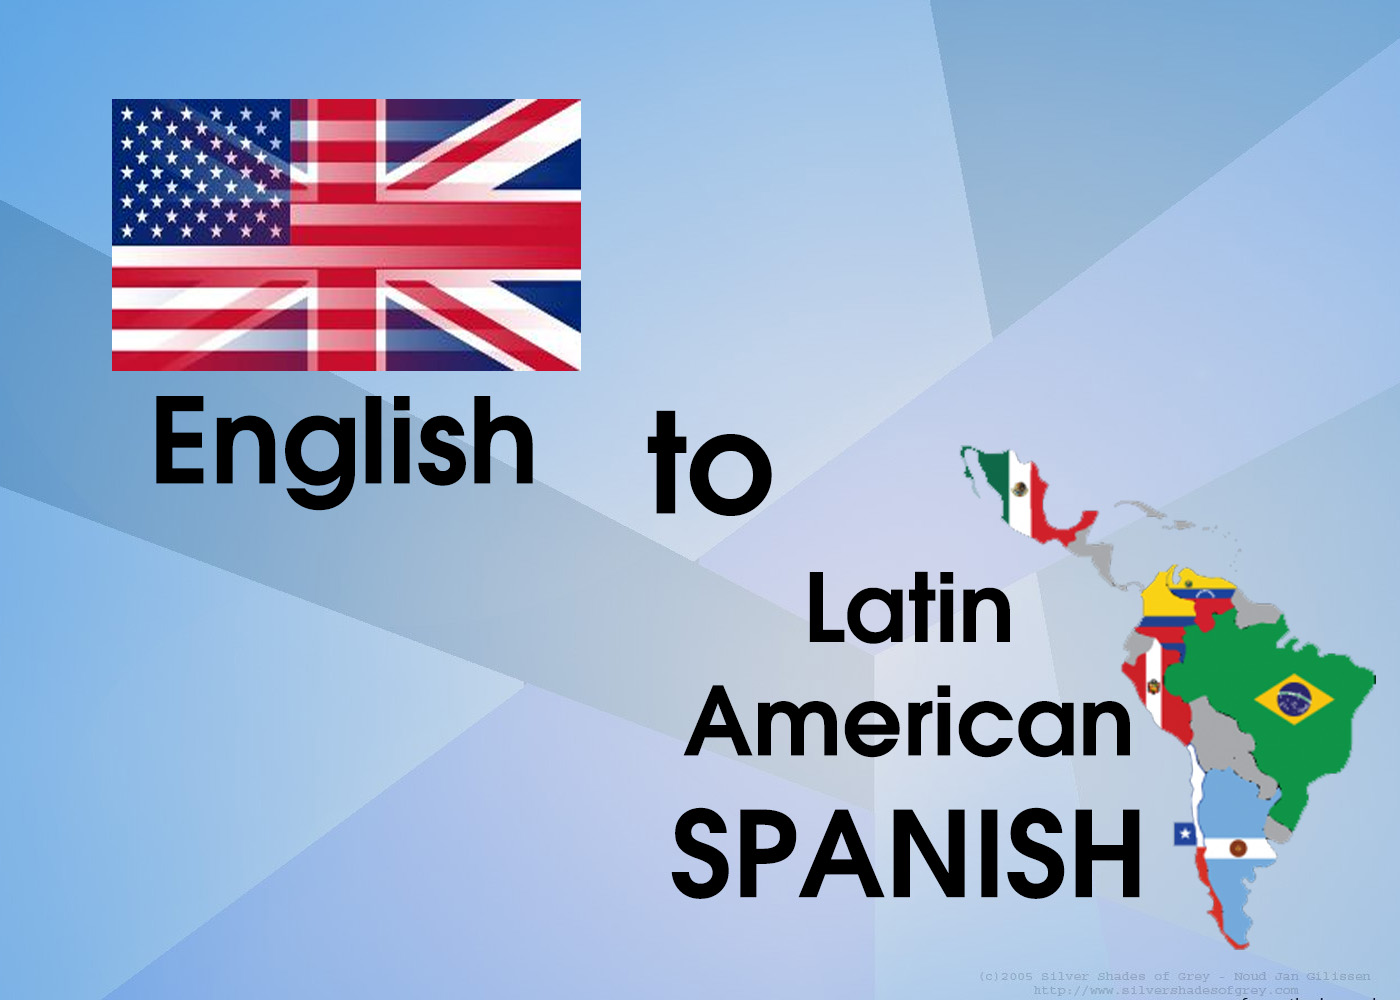 translate 500 words from English to Latin American Spanish